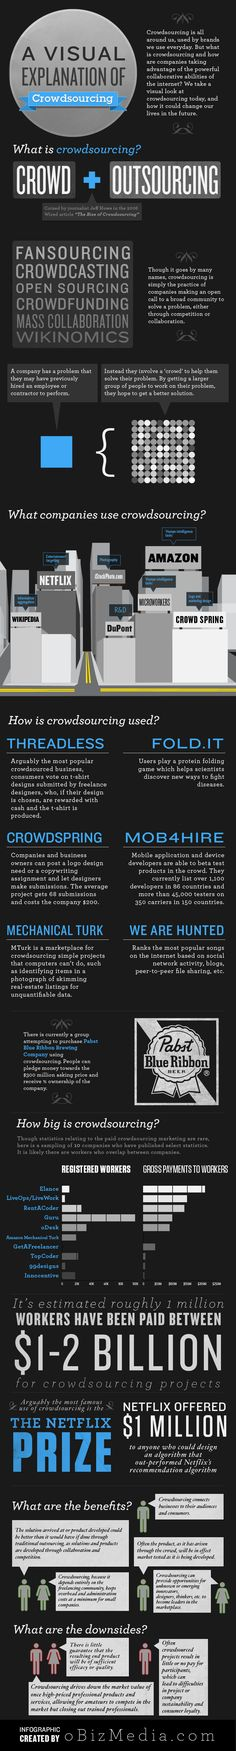 What is Crowdsourcing? [infographic]